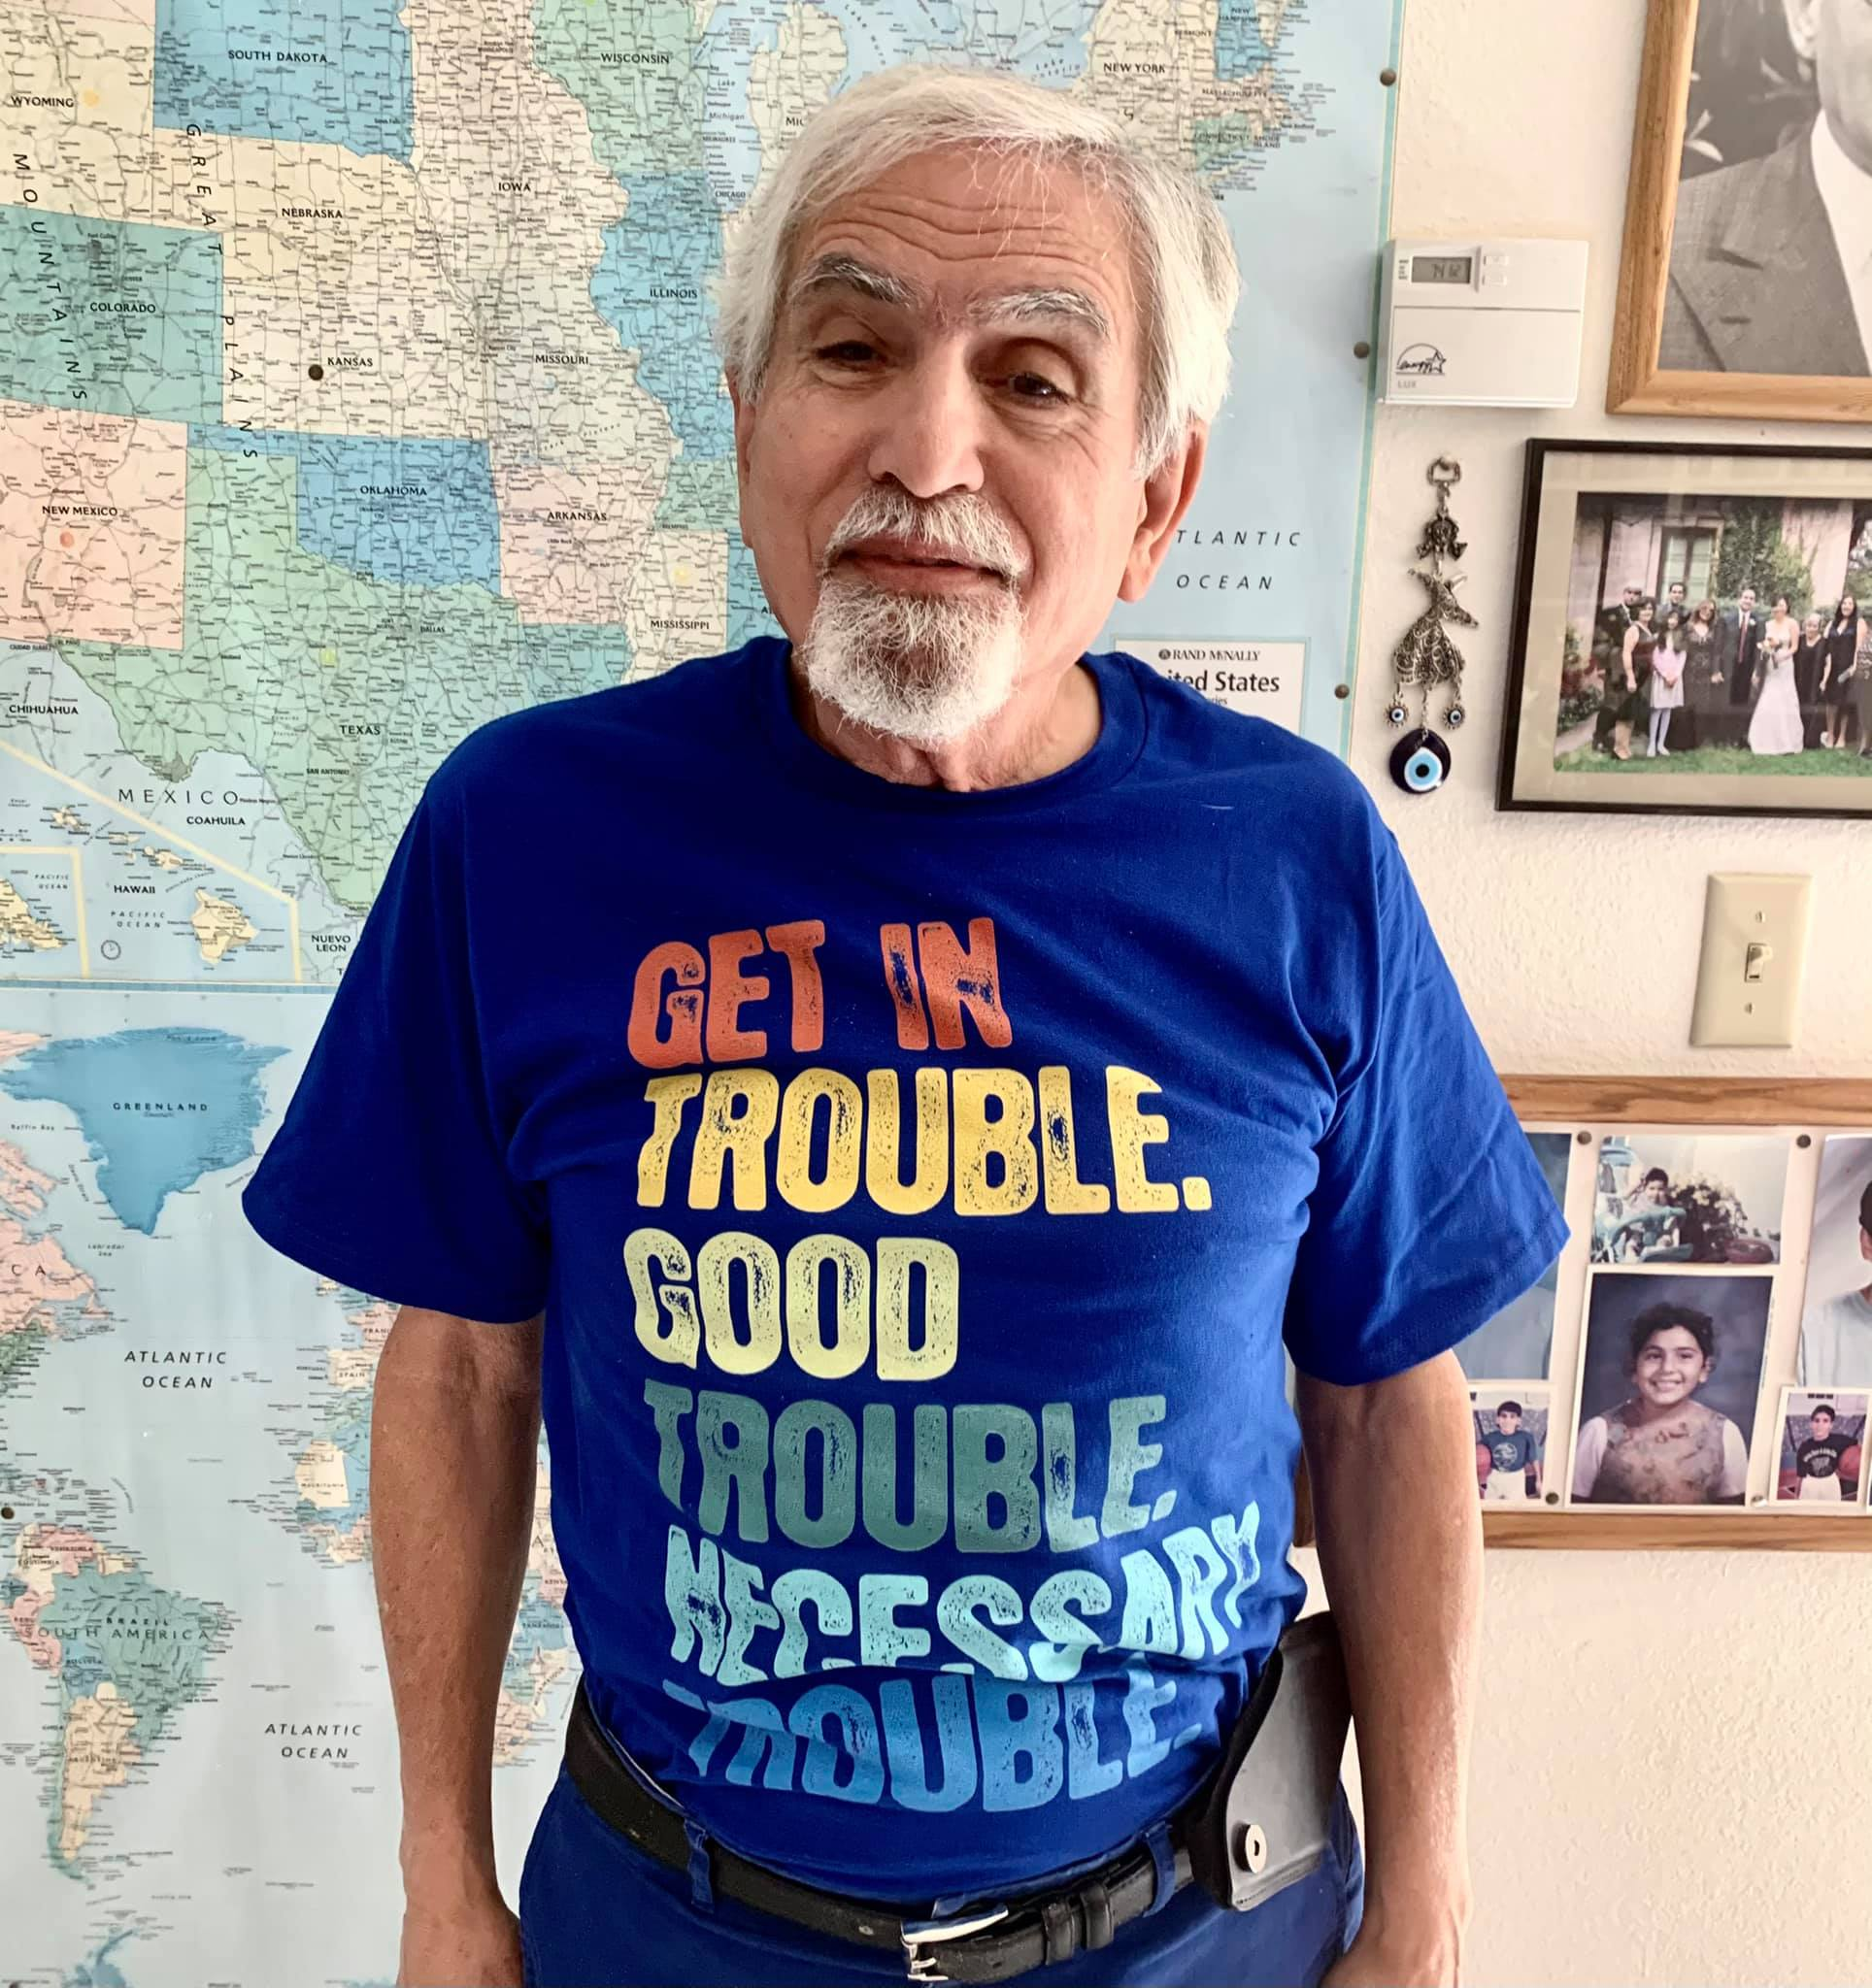 Yours truly, wearing a T-shirt with John Lewis's words: 'Get in trouble. Good trouble. Necessary trouble'